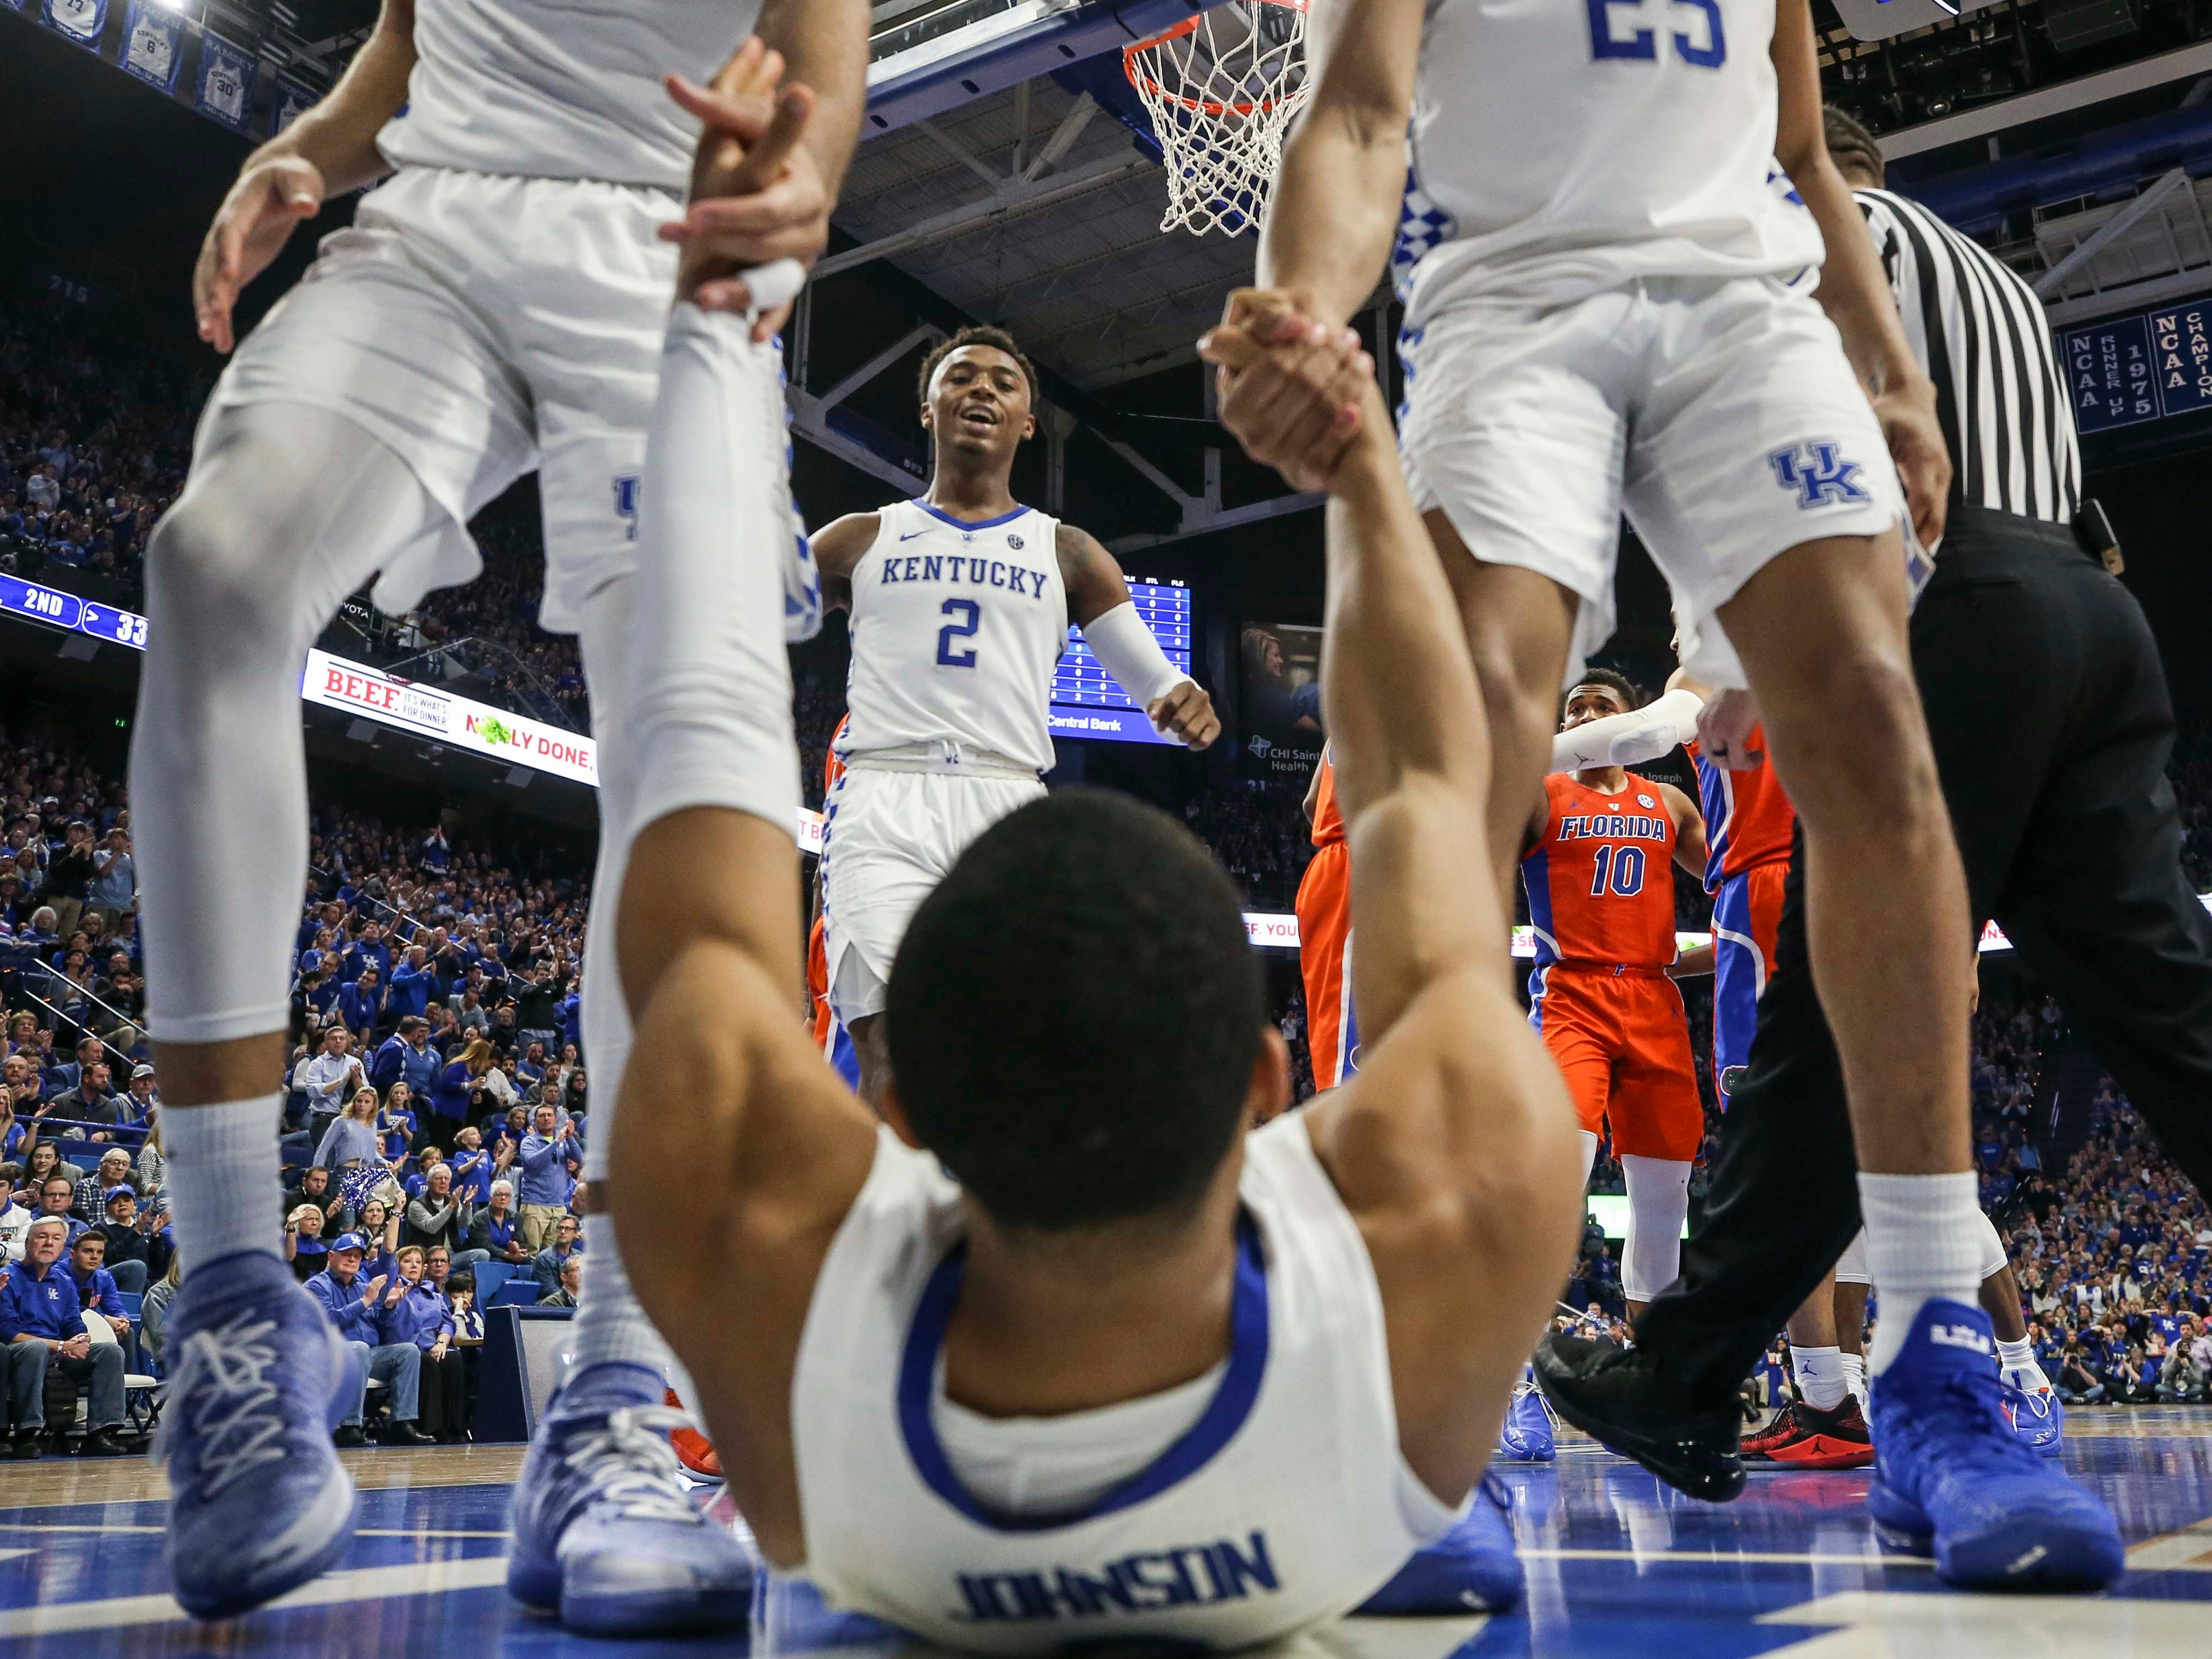 Kentucky's EJ Montgomery and PJ Washington help Keldon Johnson from the floor as Ashton Hagans approaches with a smile during the win against Florida. March 9, 2019